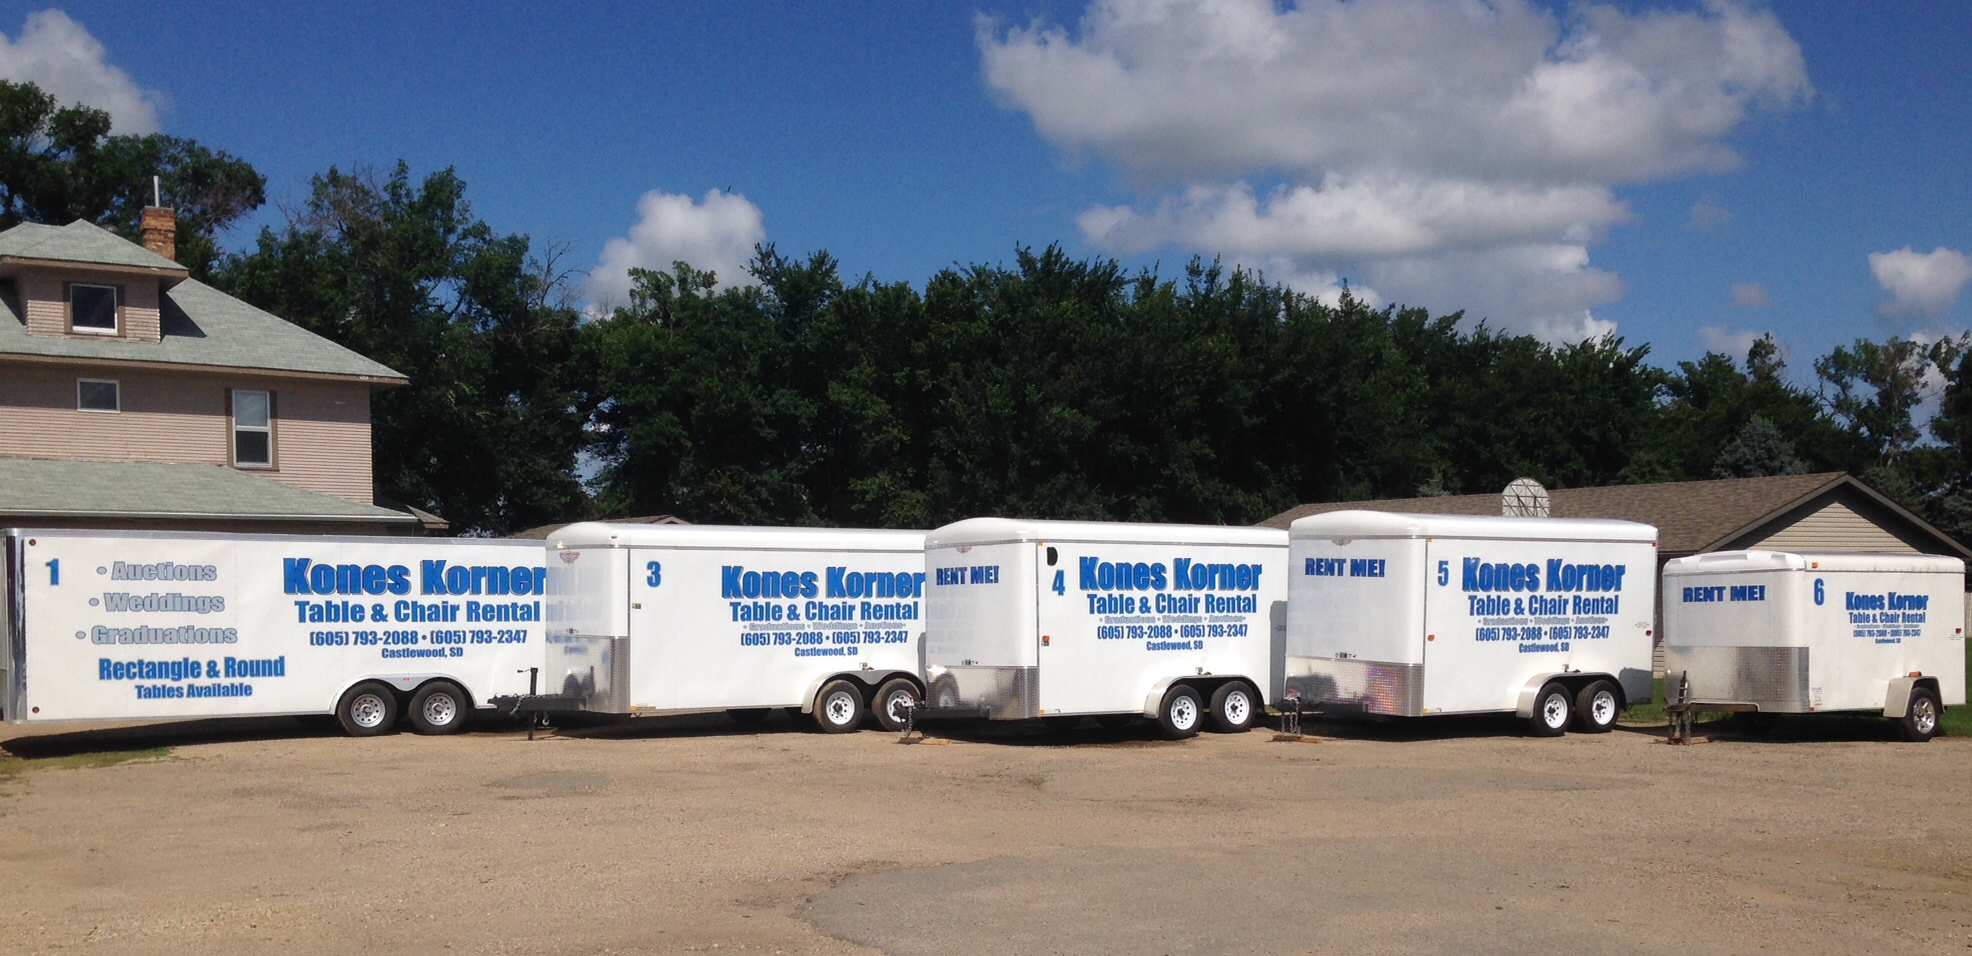 We rent just the trailers too!